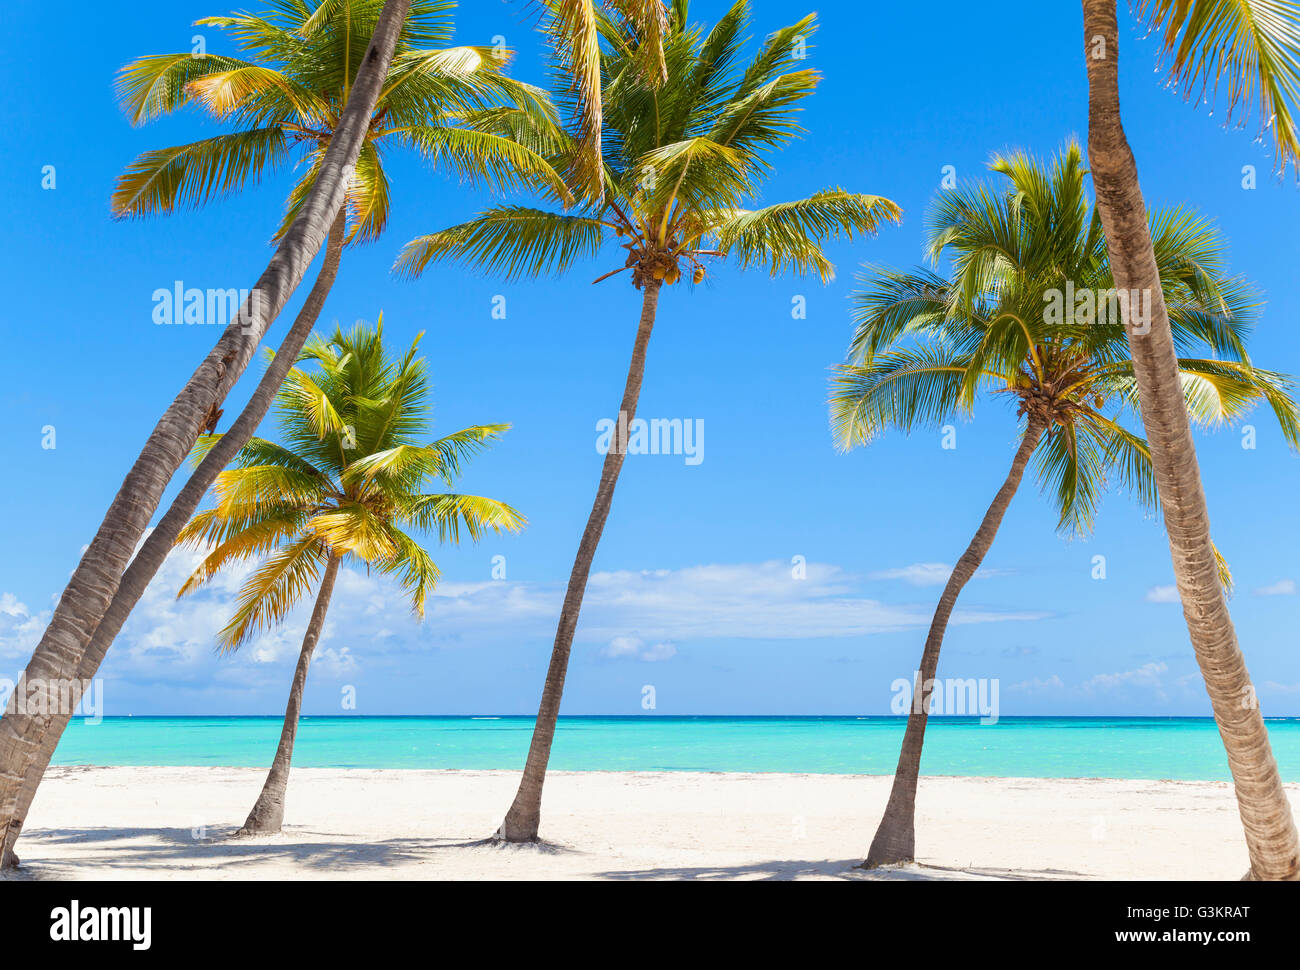 leaning palm trees on beach dominican republic the caribbean stock